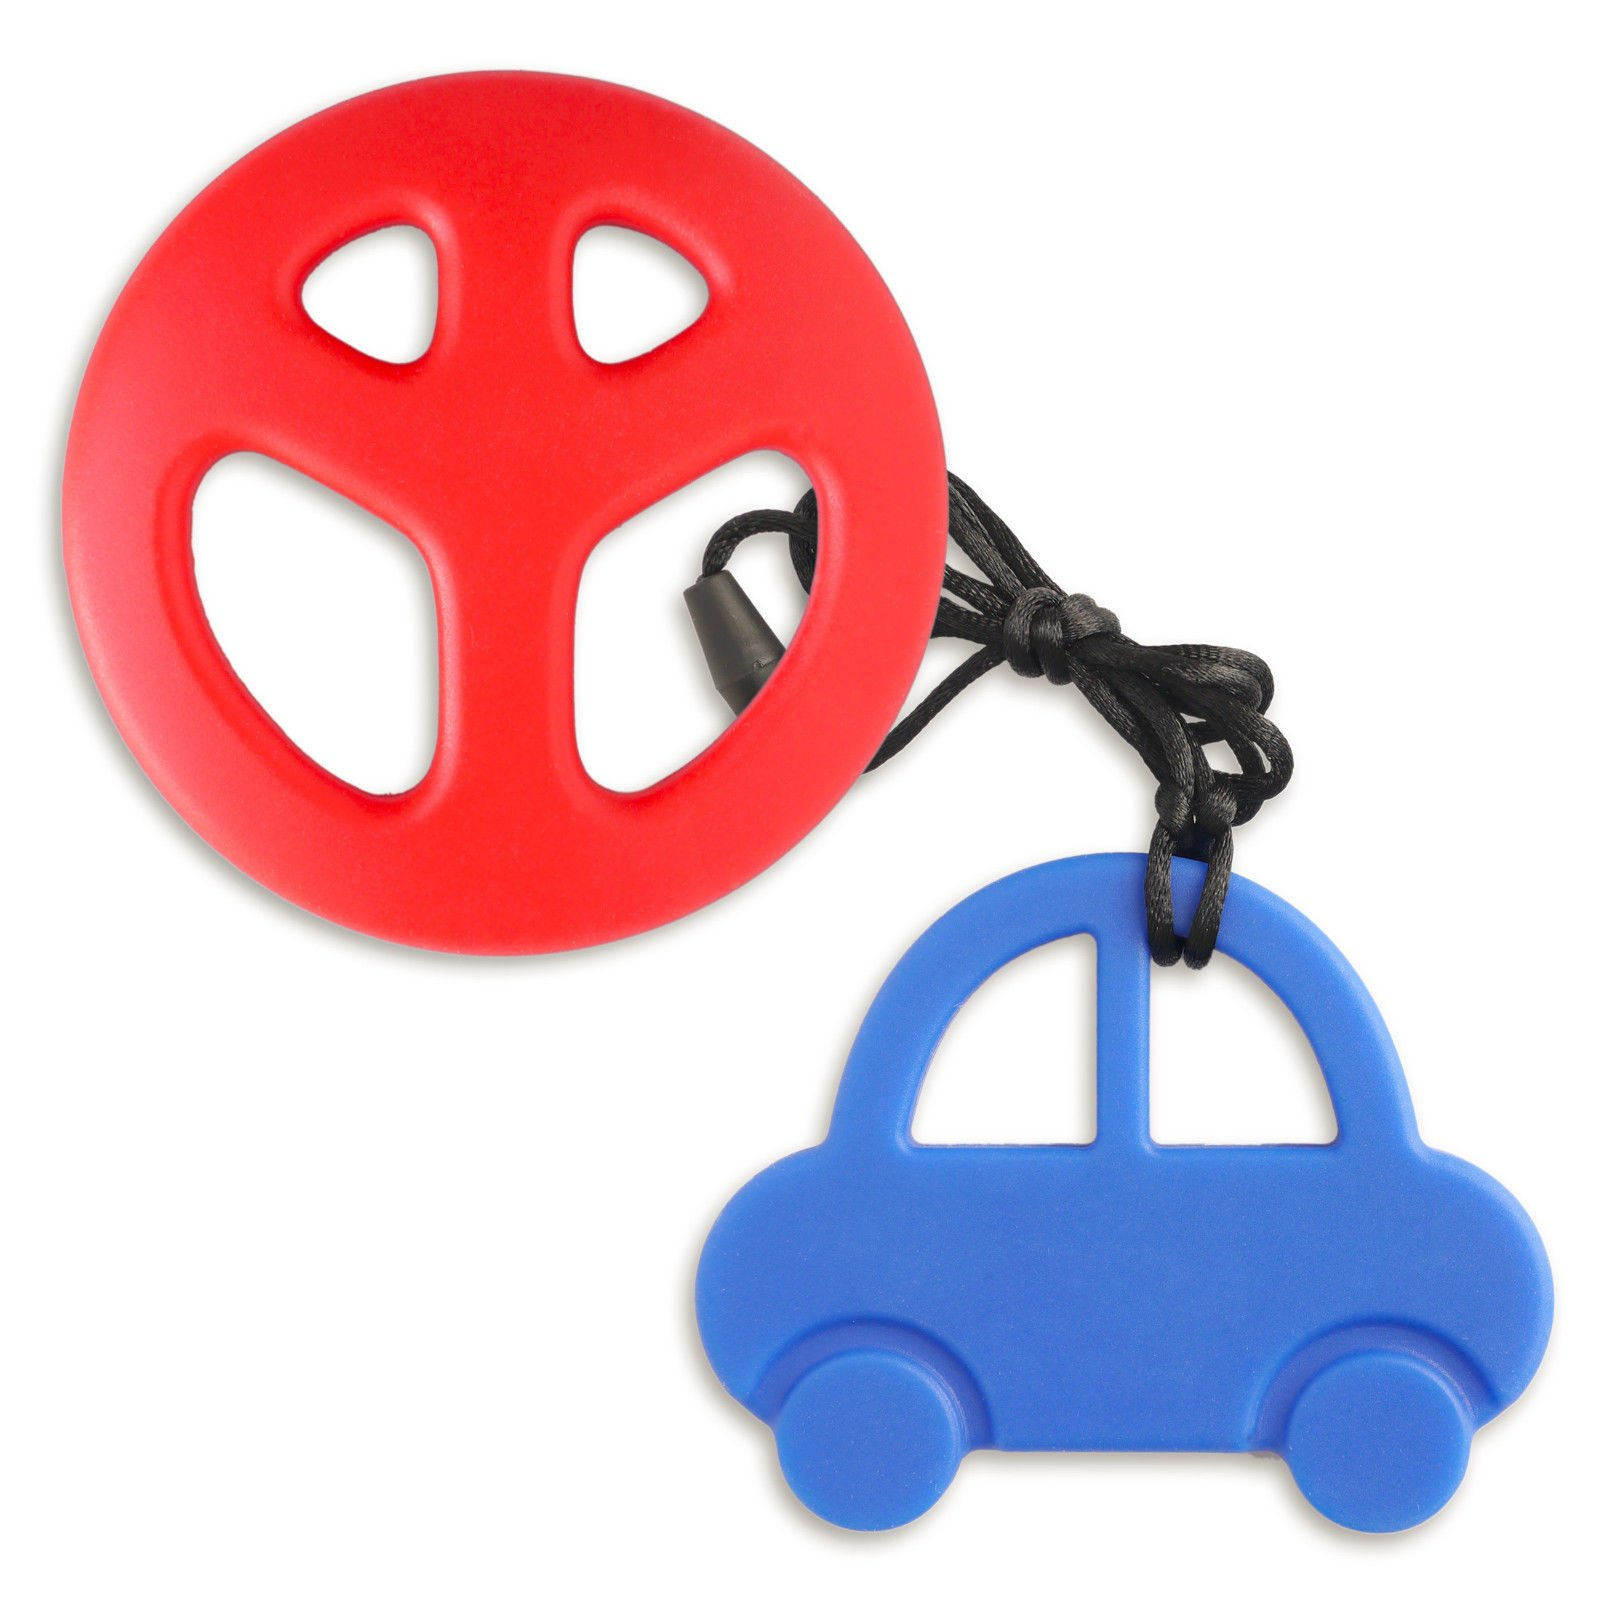 Blue Car, Red Peace- BABY Silicone Teething Nursing Breastfeeding Necklace chew chewable jewelry